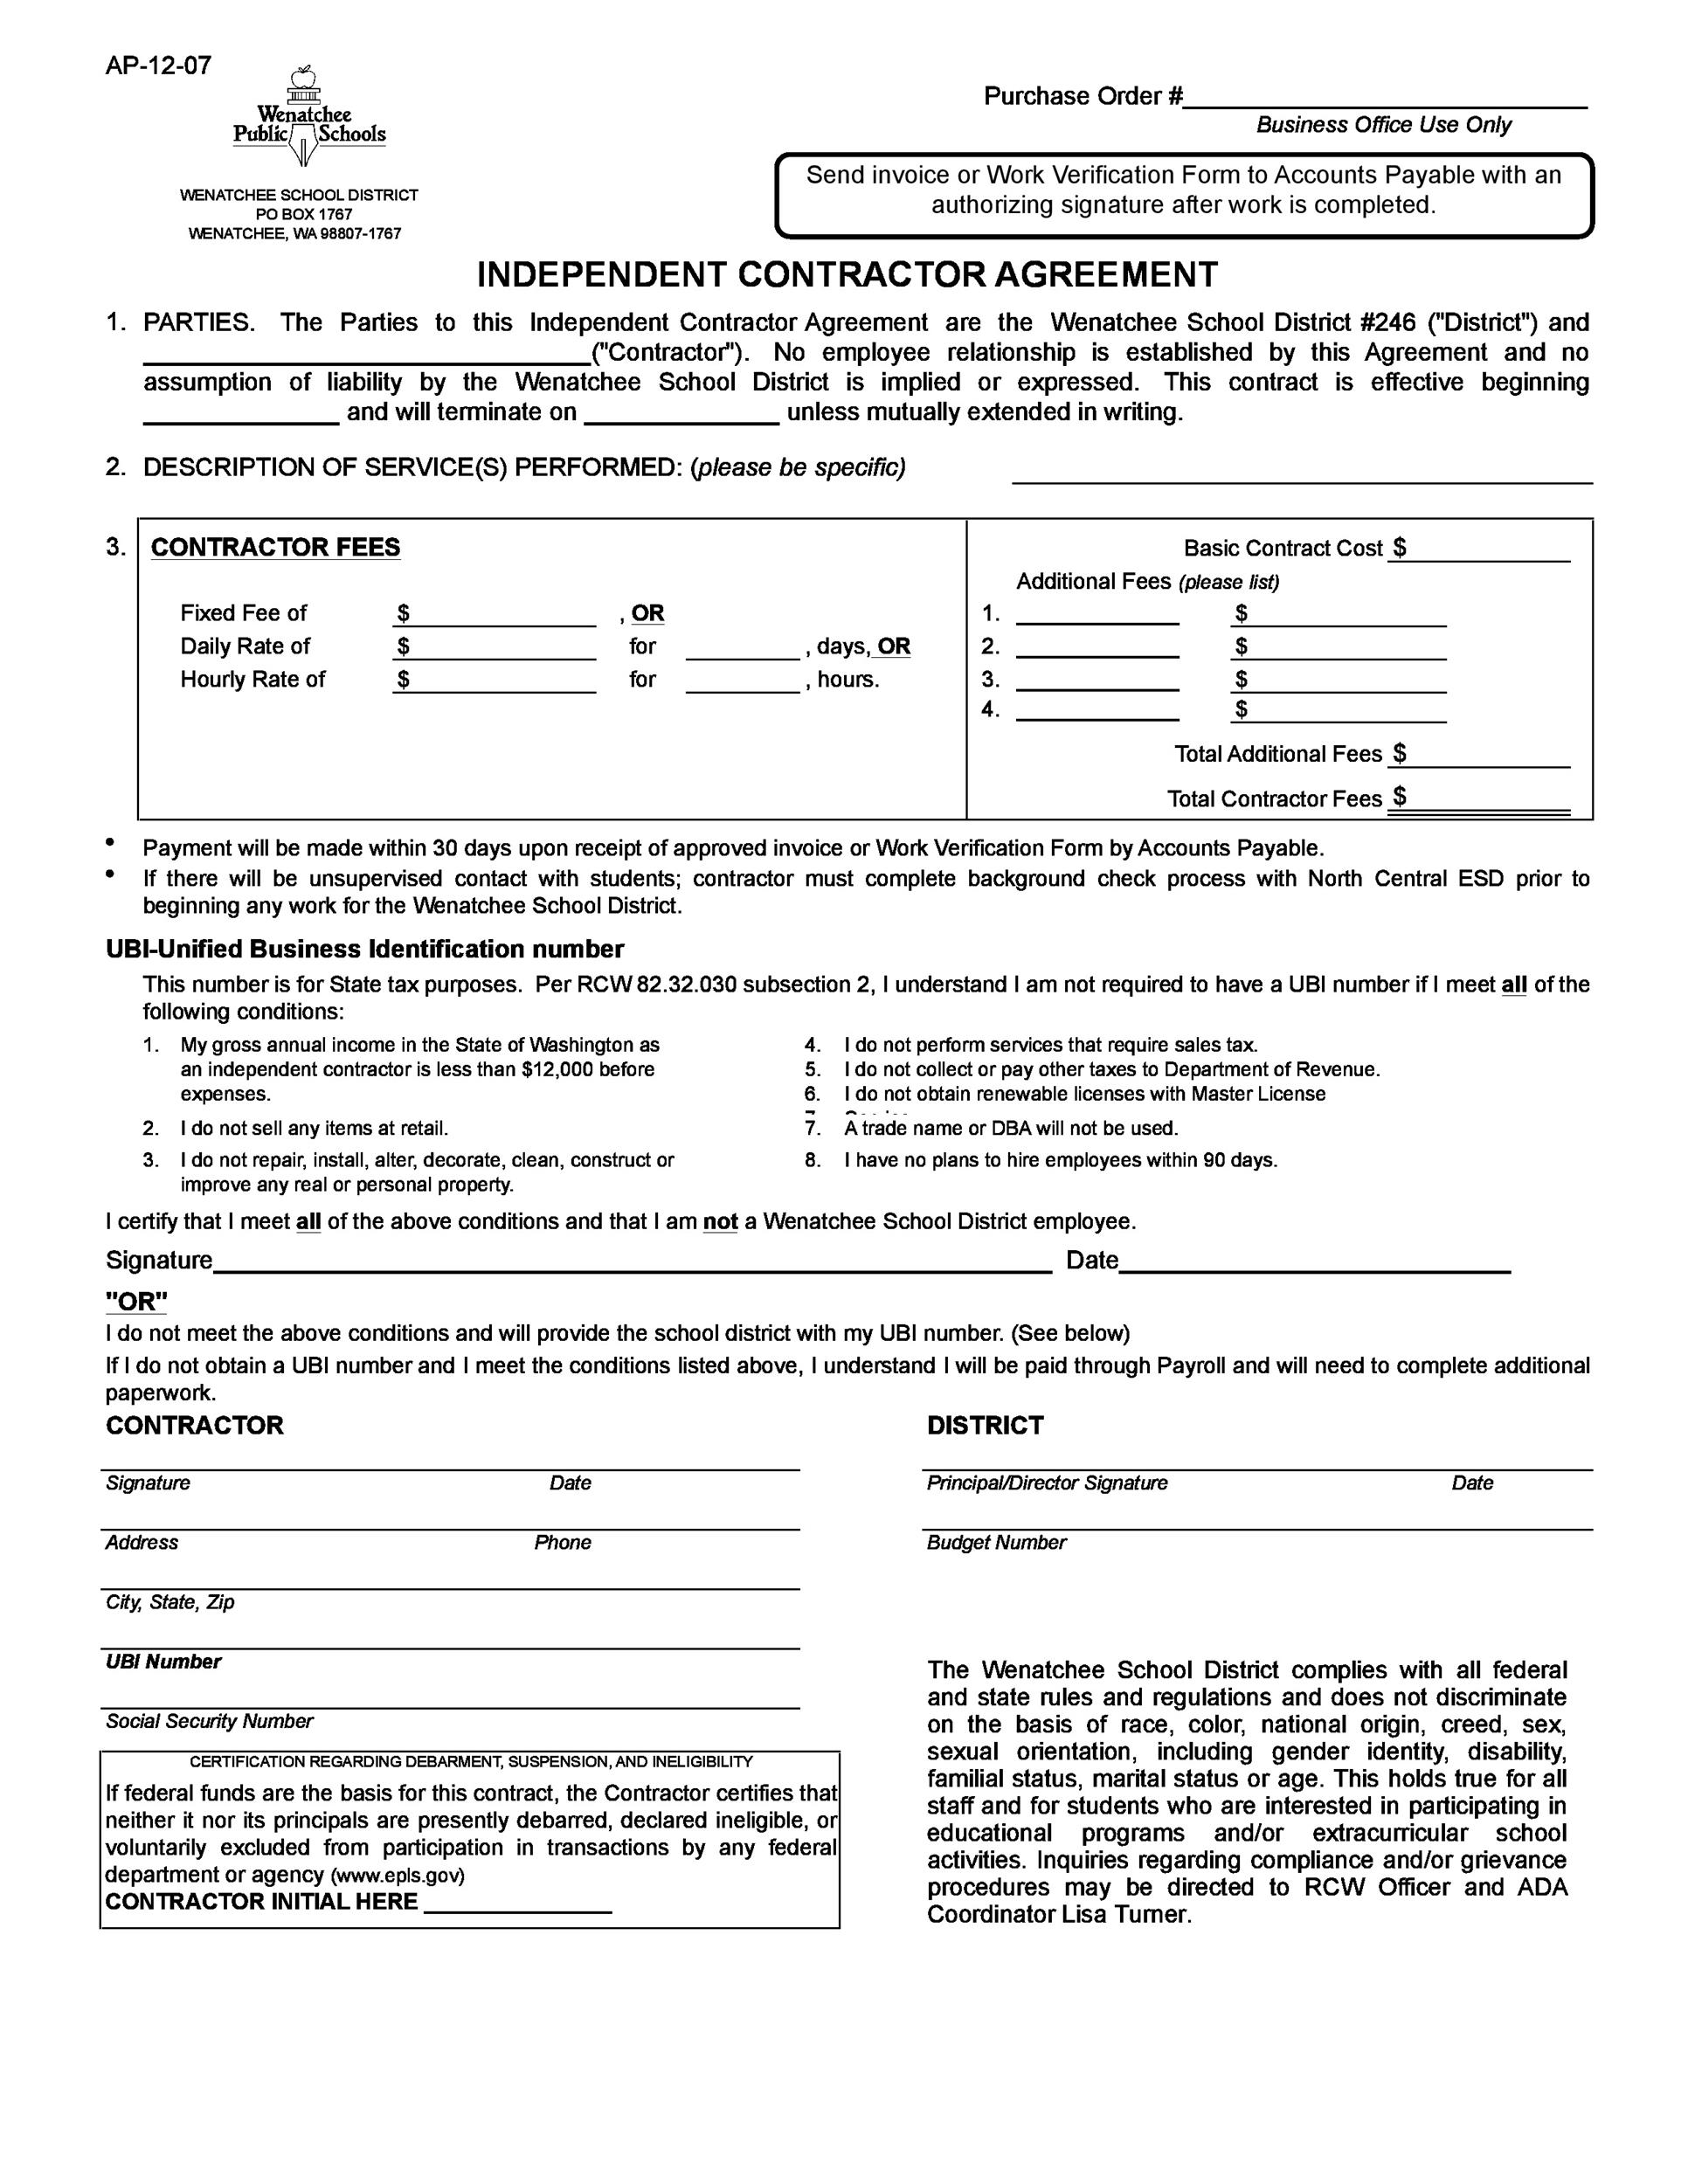 Free independent contractor agreement 38